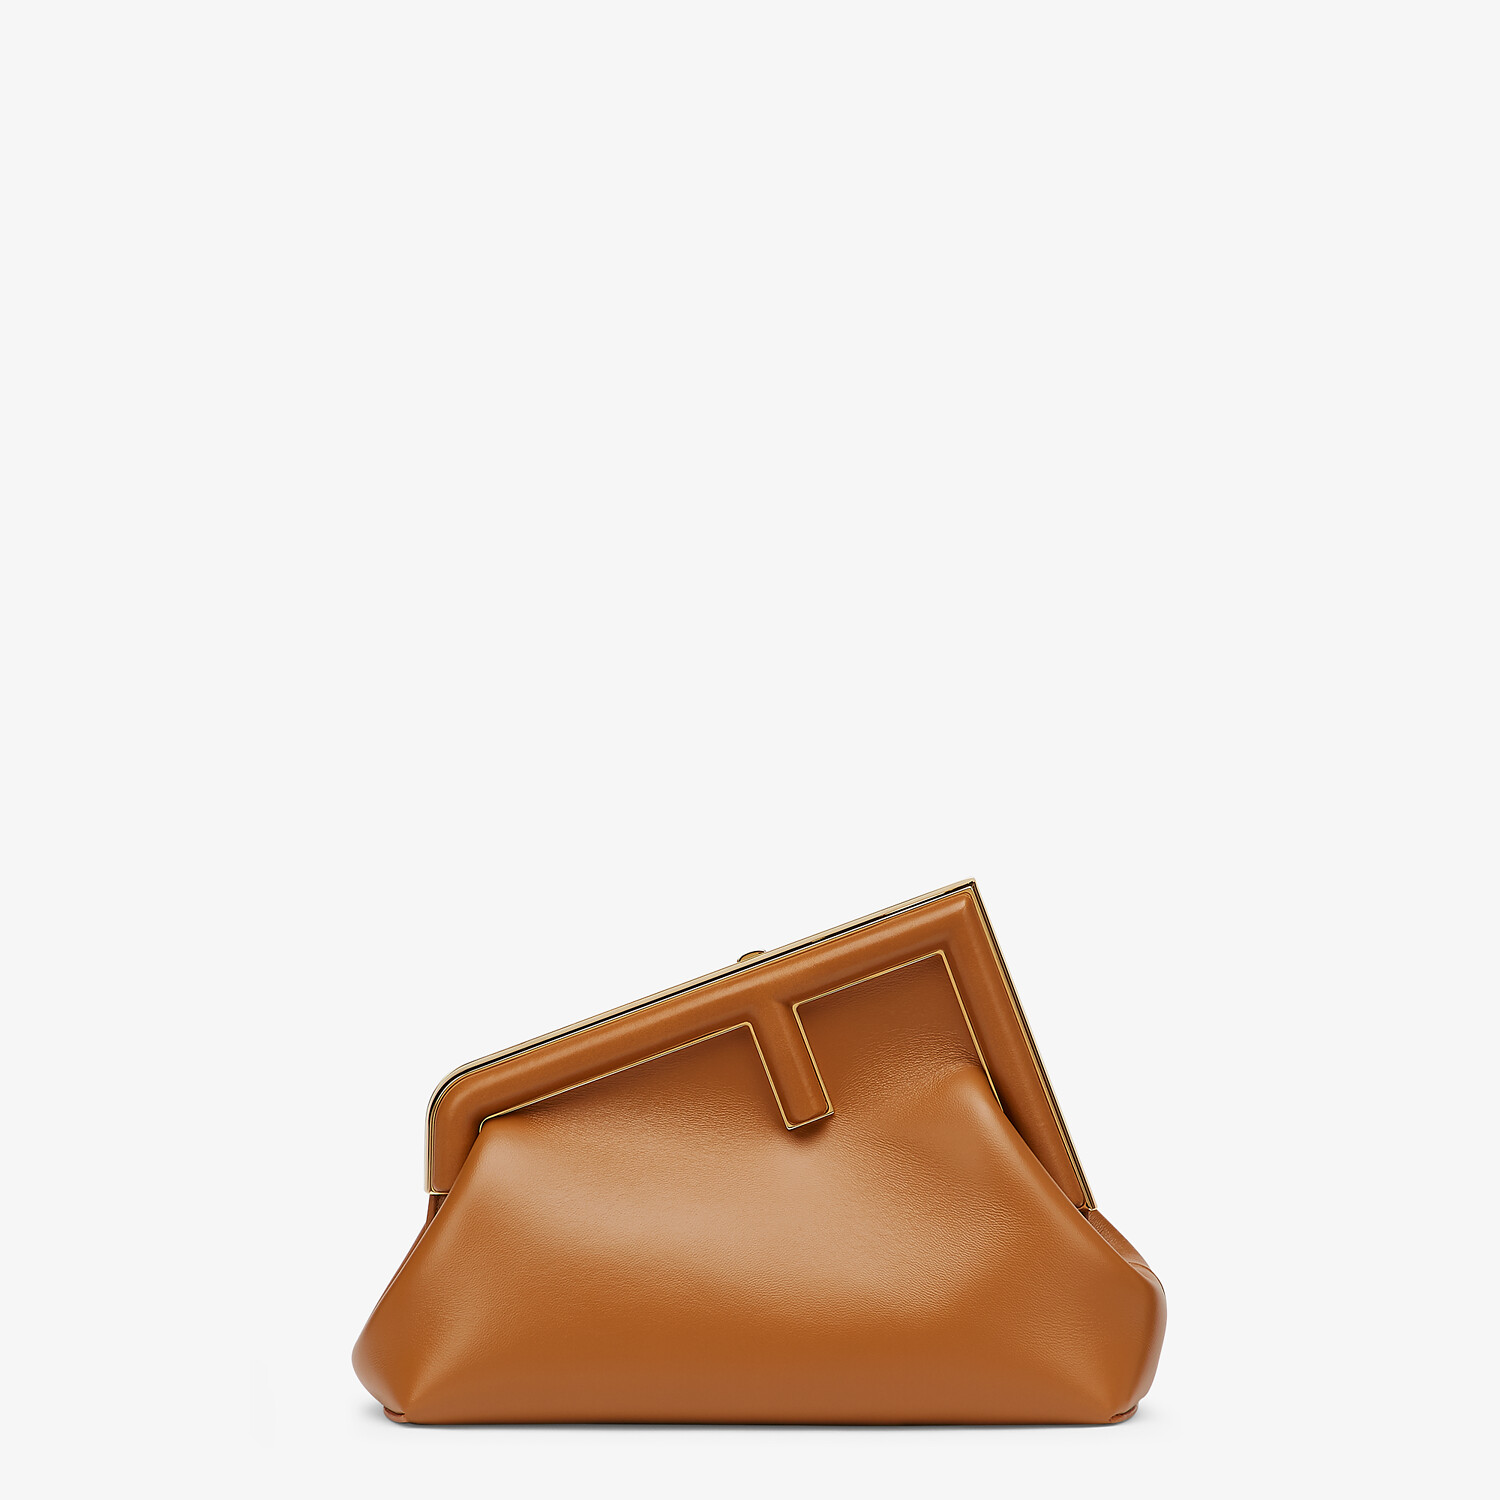 FENDI FENDI FIRST SMALL - Brown leather bag - view 1 detail